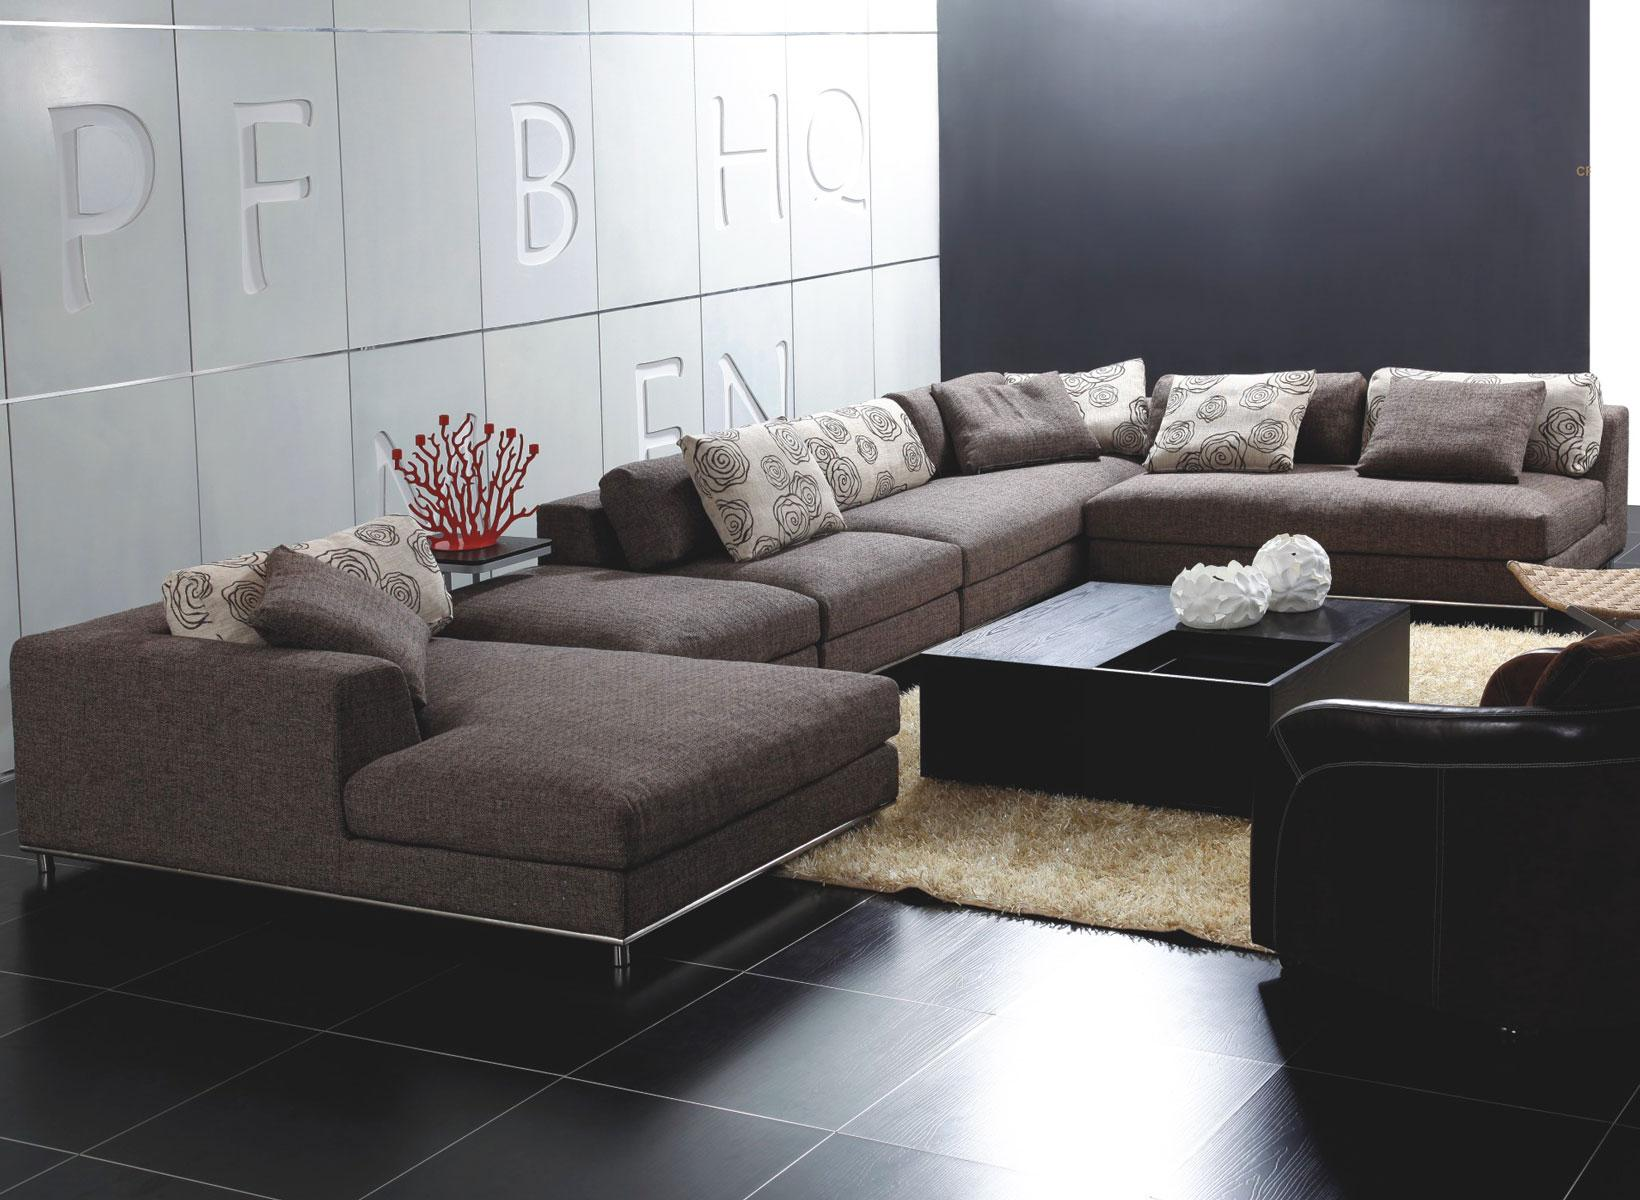 Creative Design Sofas And Sectionals With Cushion And Laminate Flooring For Living Room Ideas